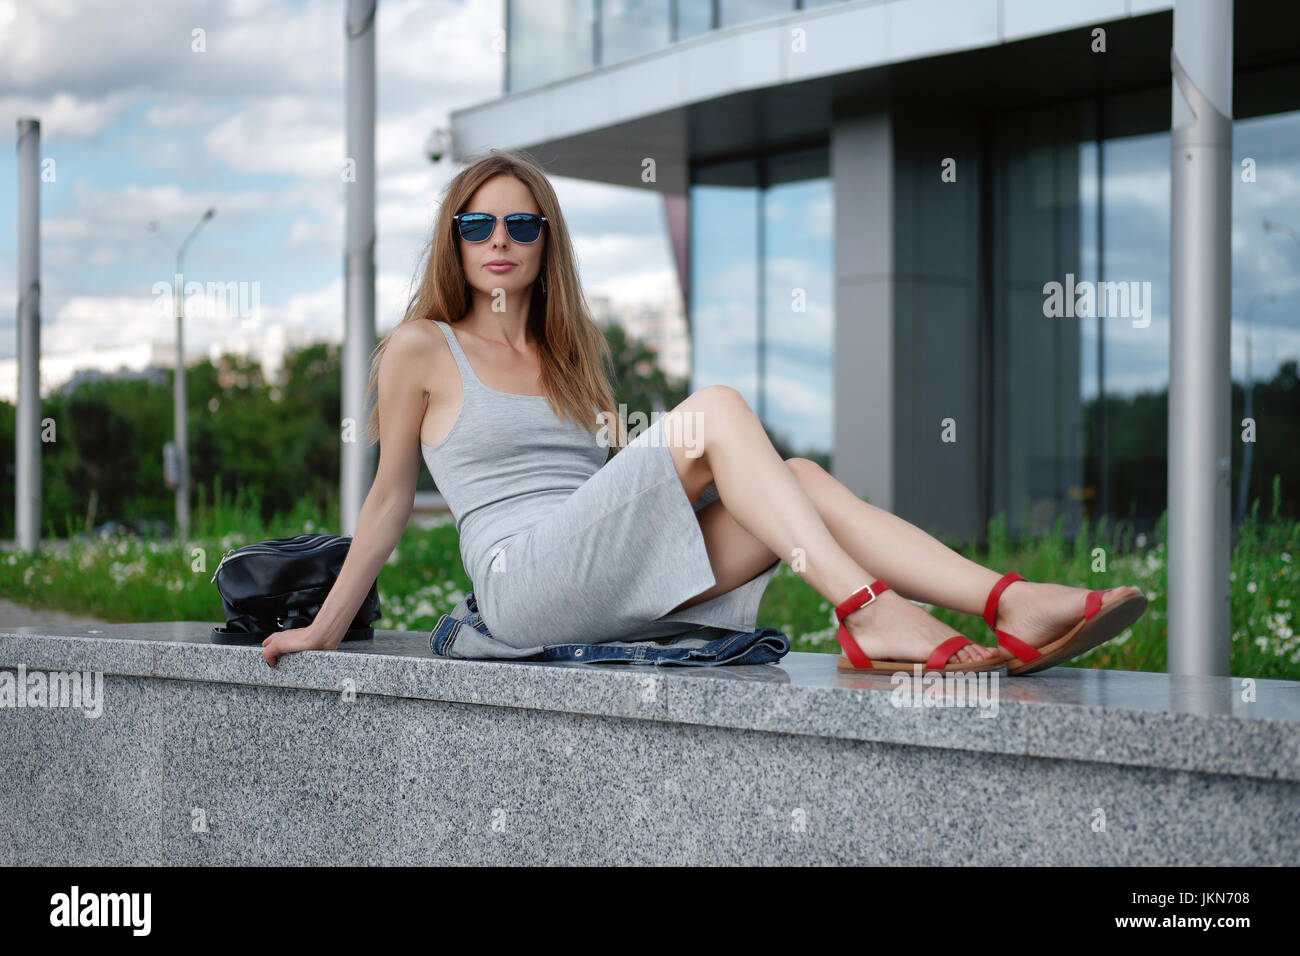 Young attractive stylish brunette woman sitting on marble surface with bent knee. Reflection of the sky in windows. - Stock Image